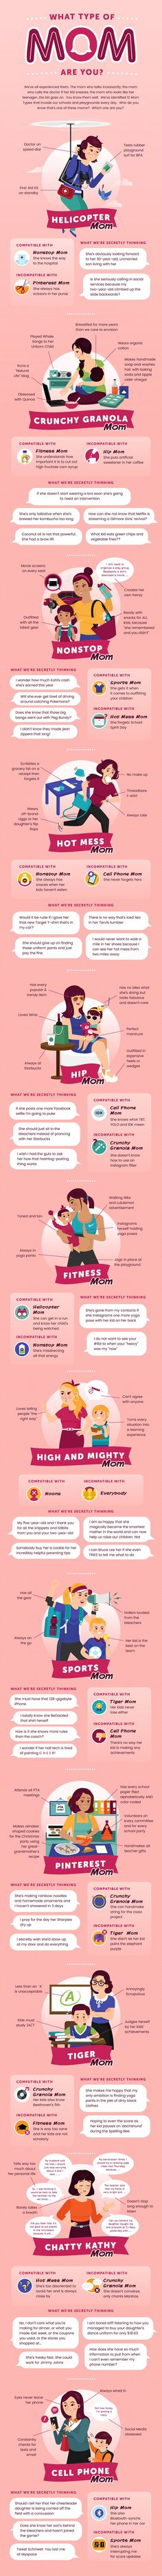 what type of mom are you?   I'm embarrassed to admit I may be a chatty Kathy or a hot mess.   Is it possible to be a chatty mess??